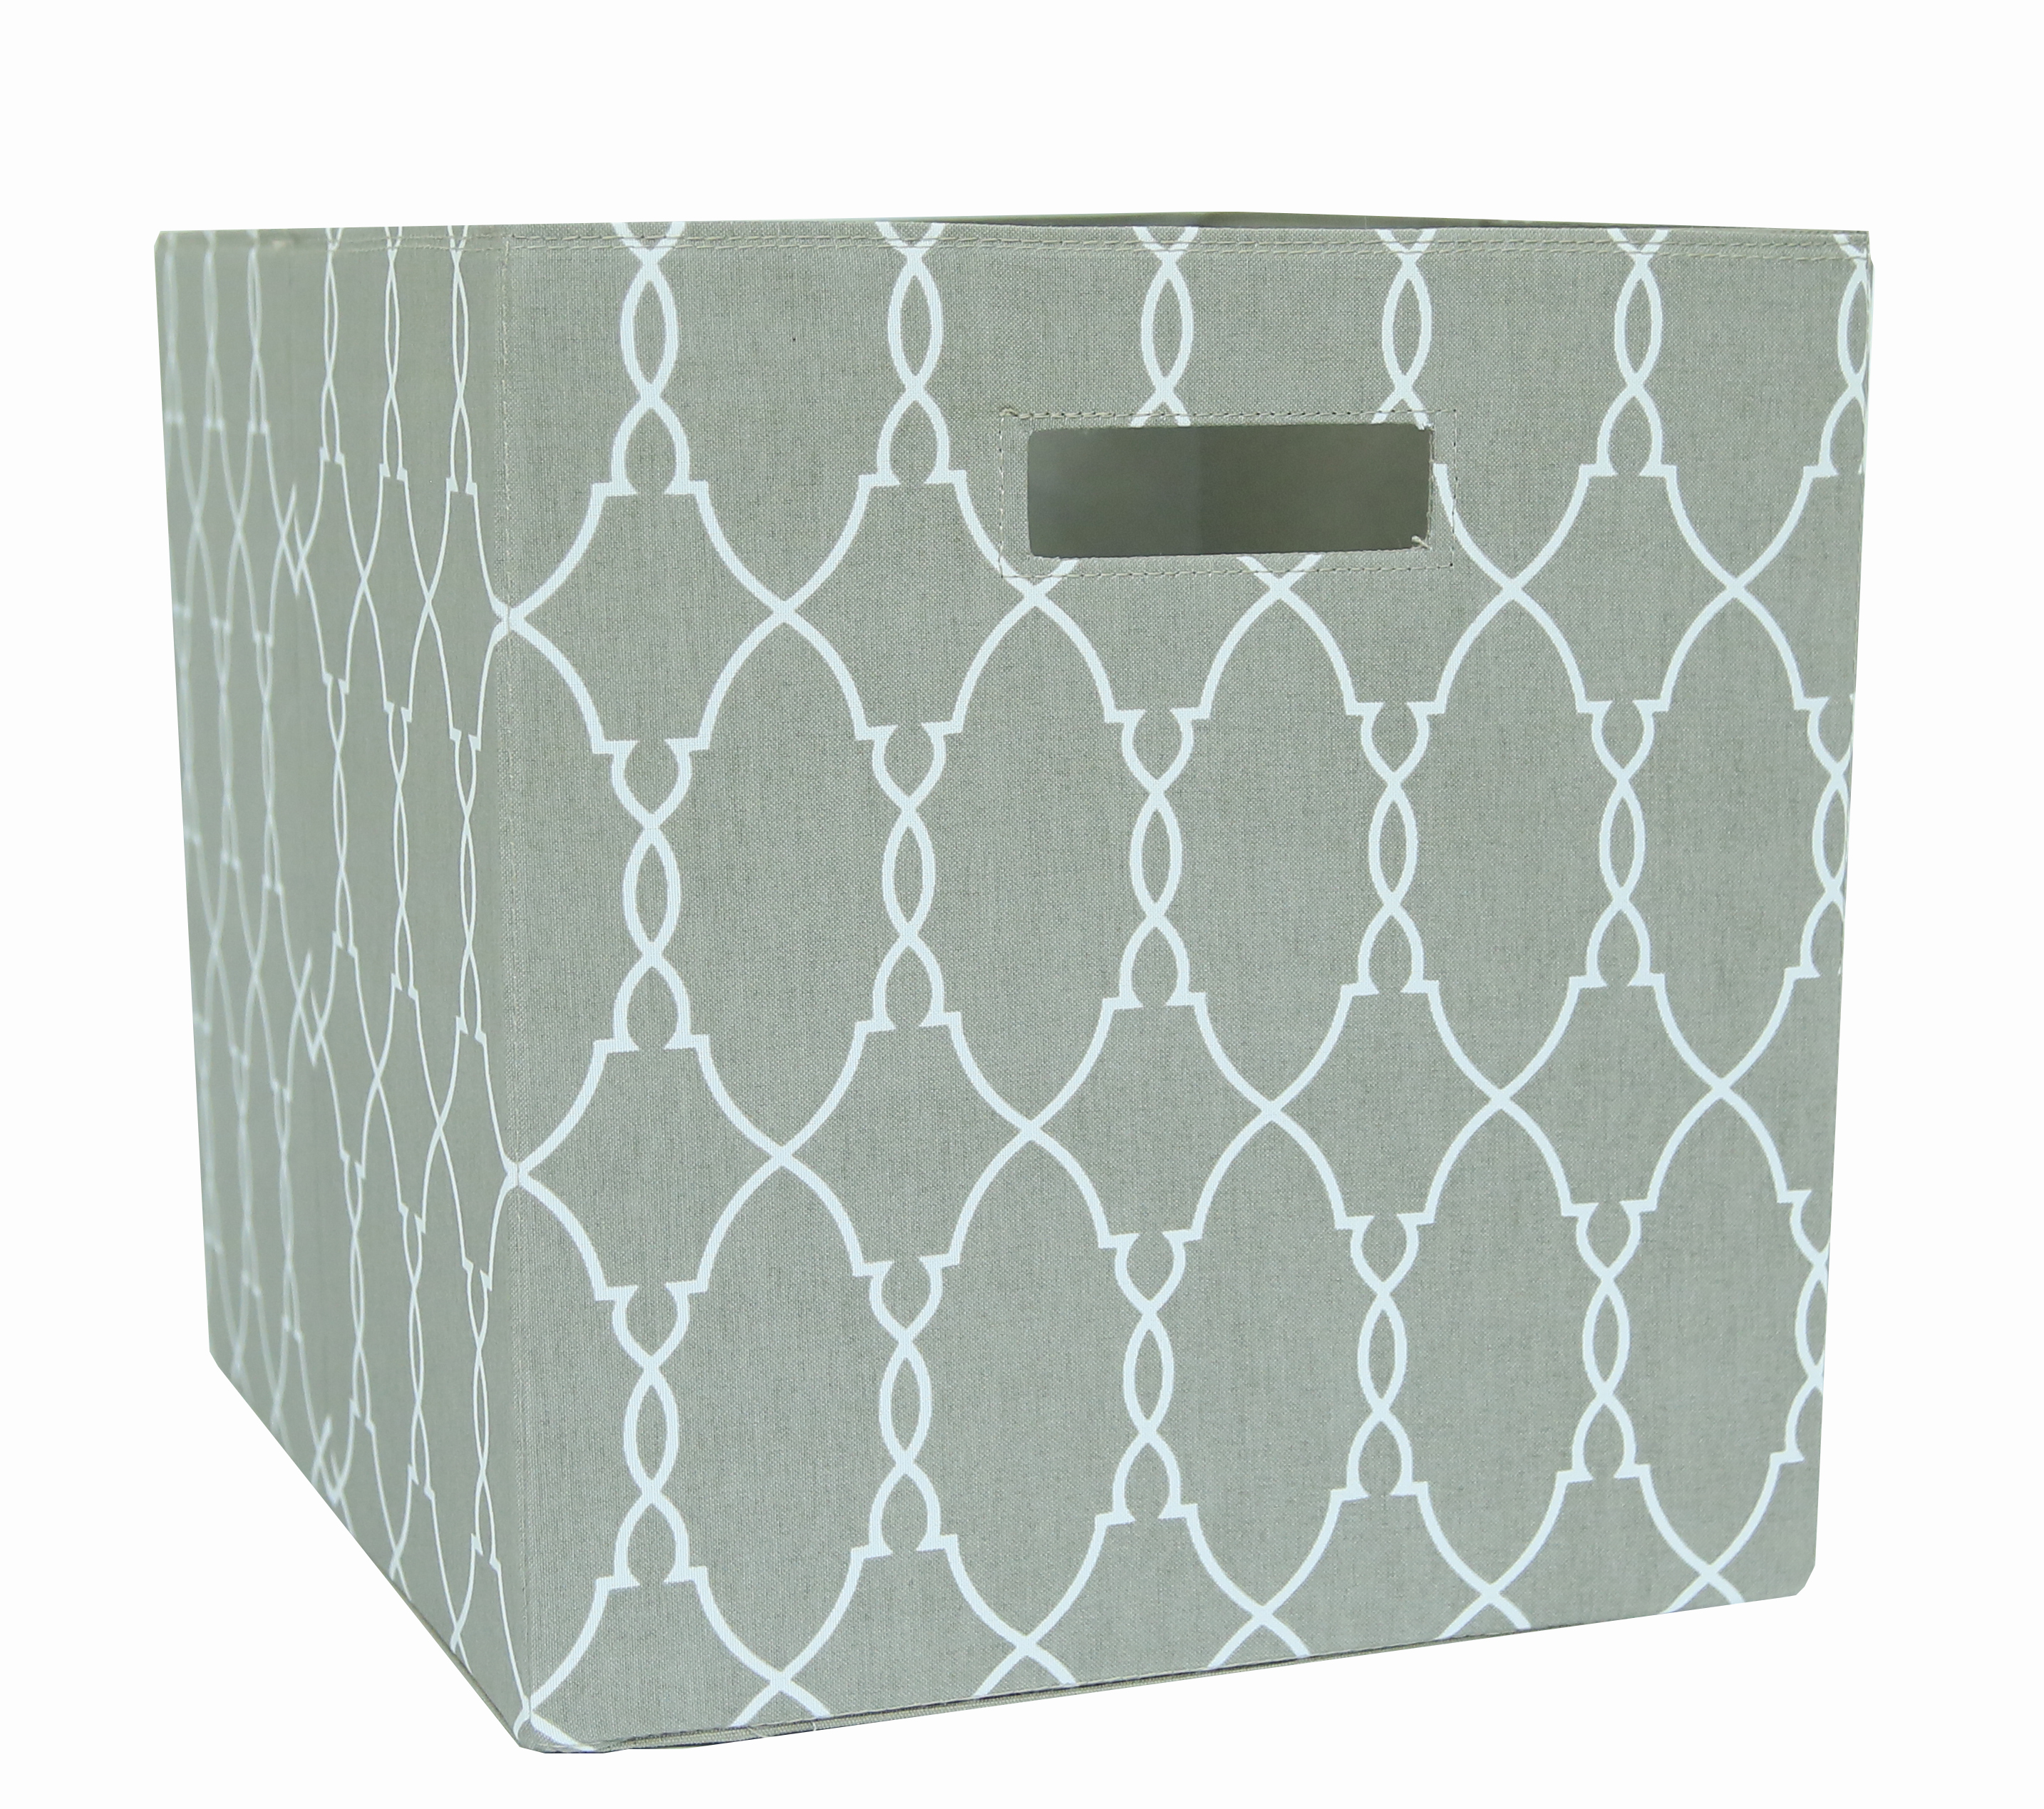 Better Homes and Gardens Collapsible Storage Bin, Taupe Trellis ...